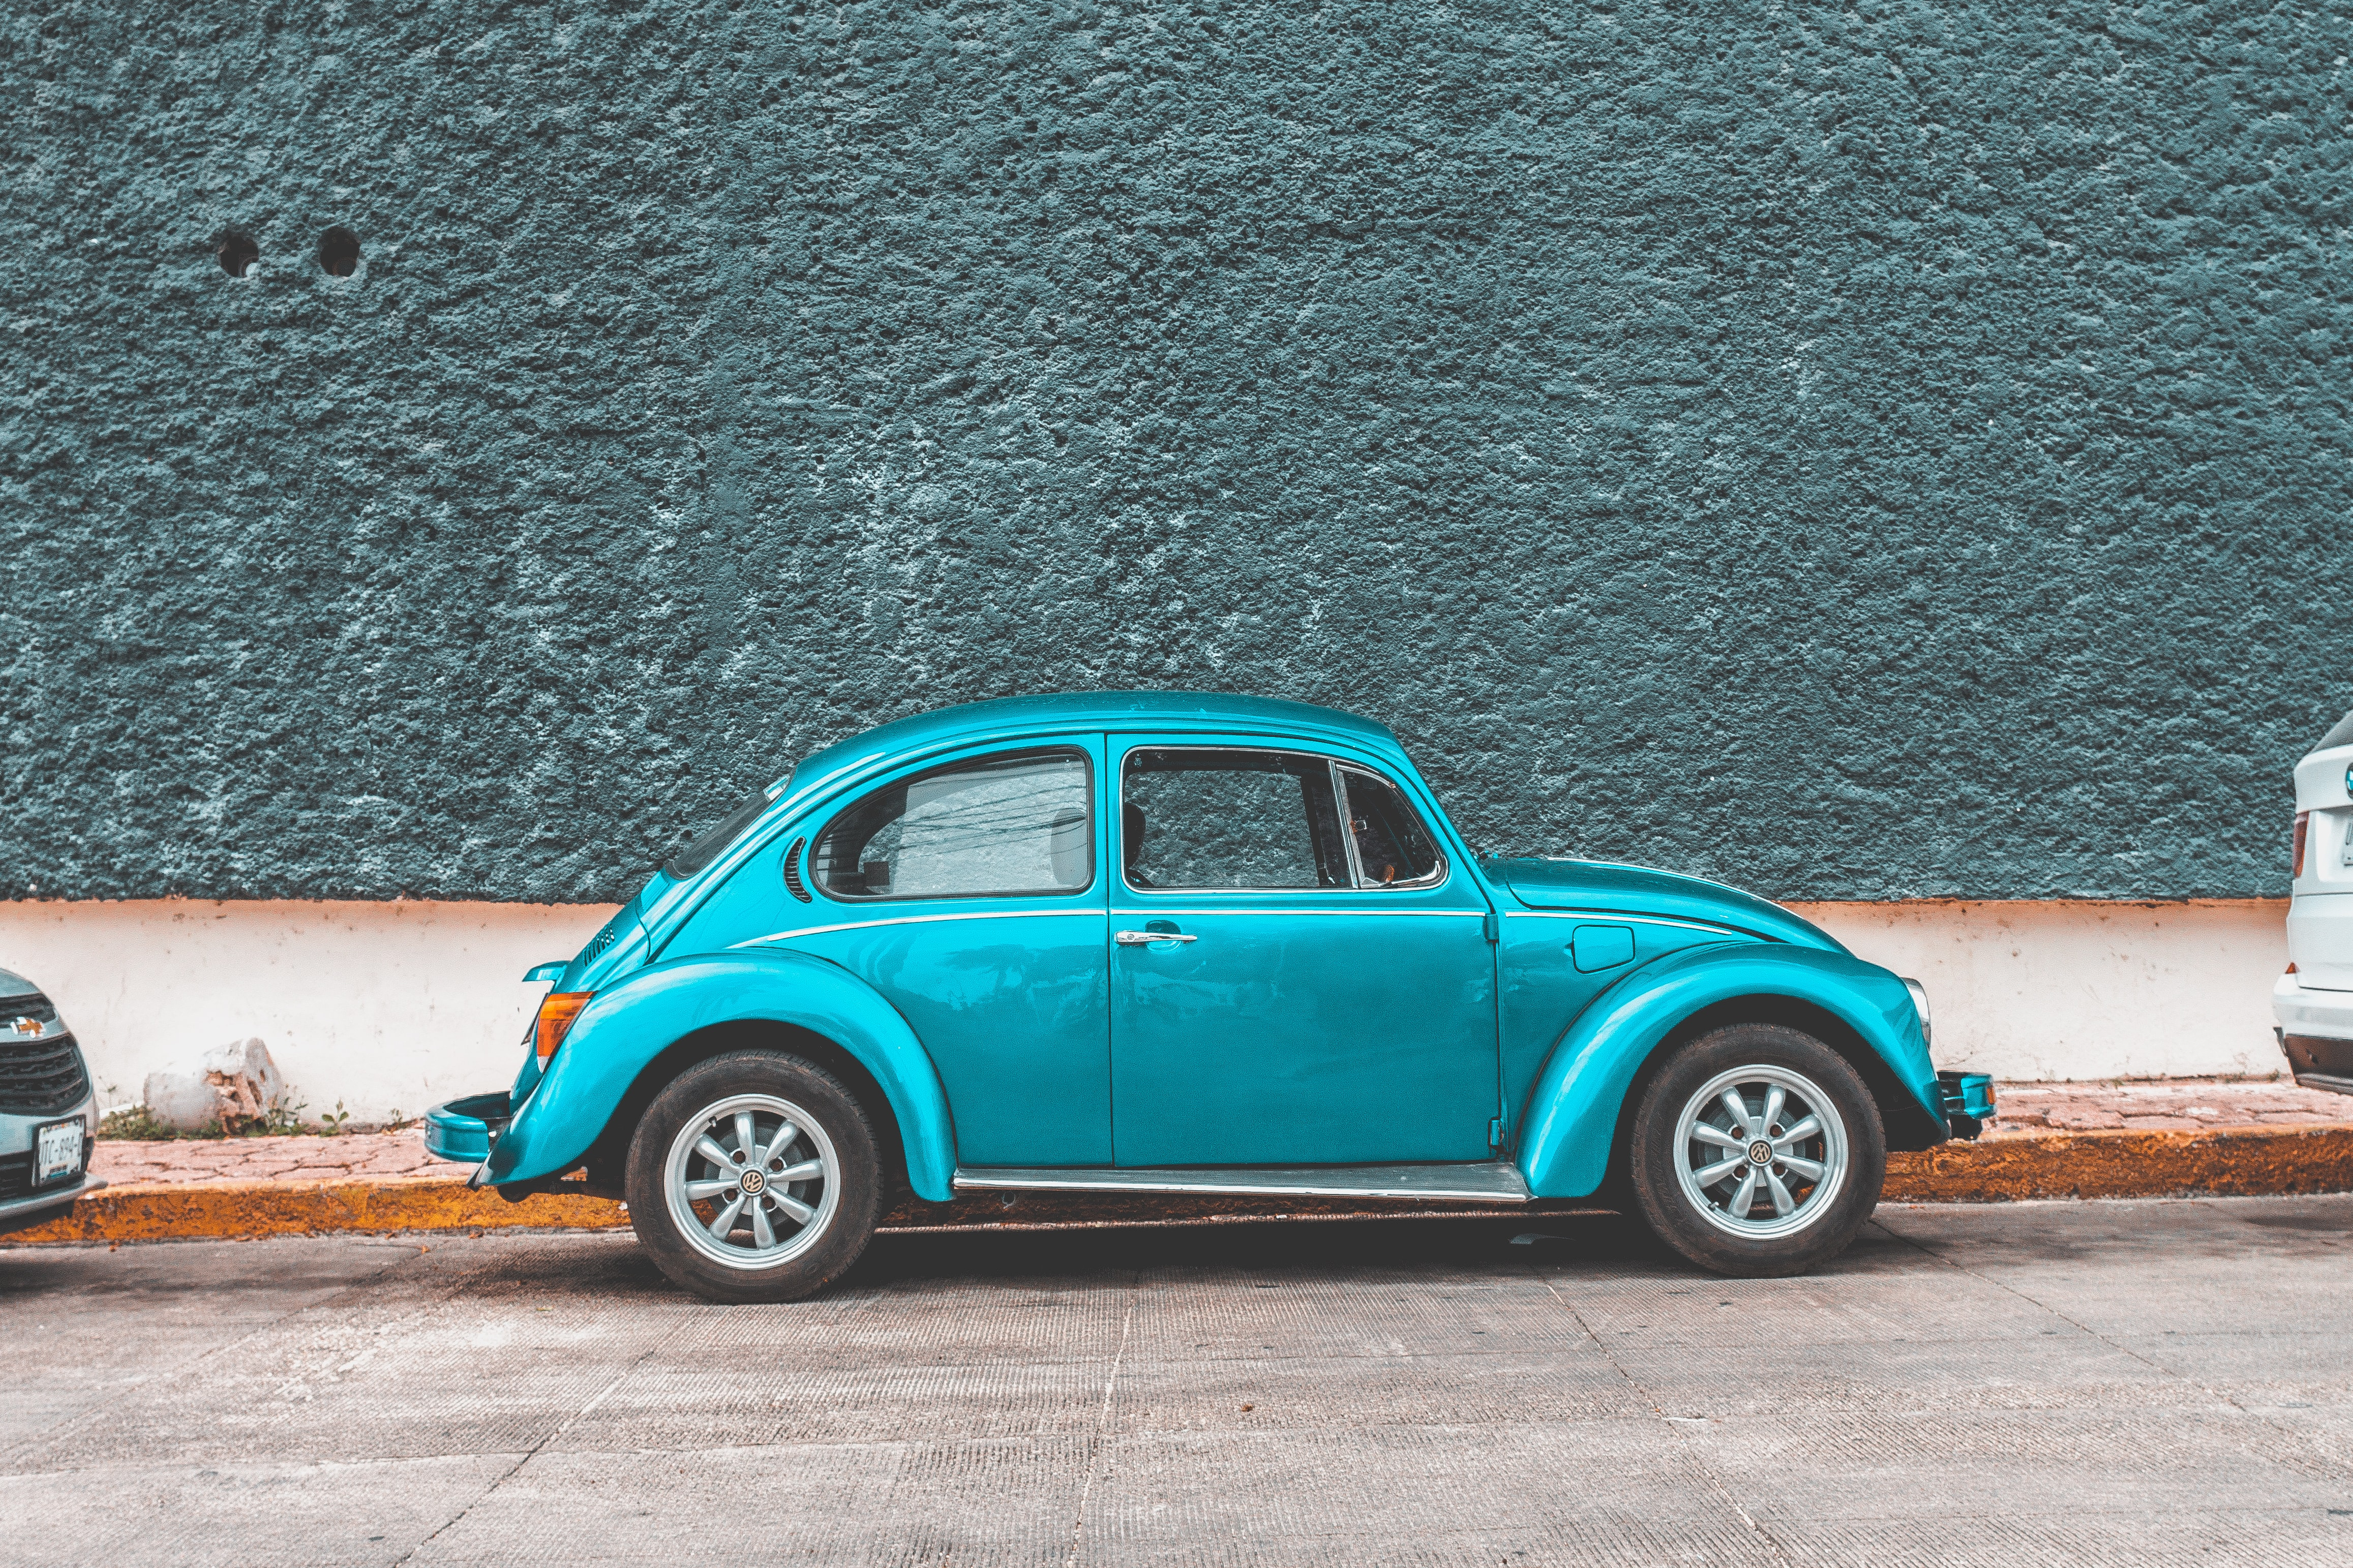 teal Volkswagen Beetle car parked beside sidewalk